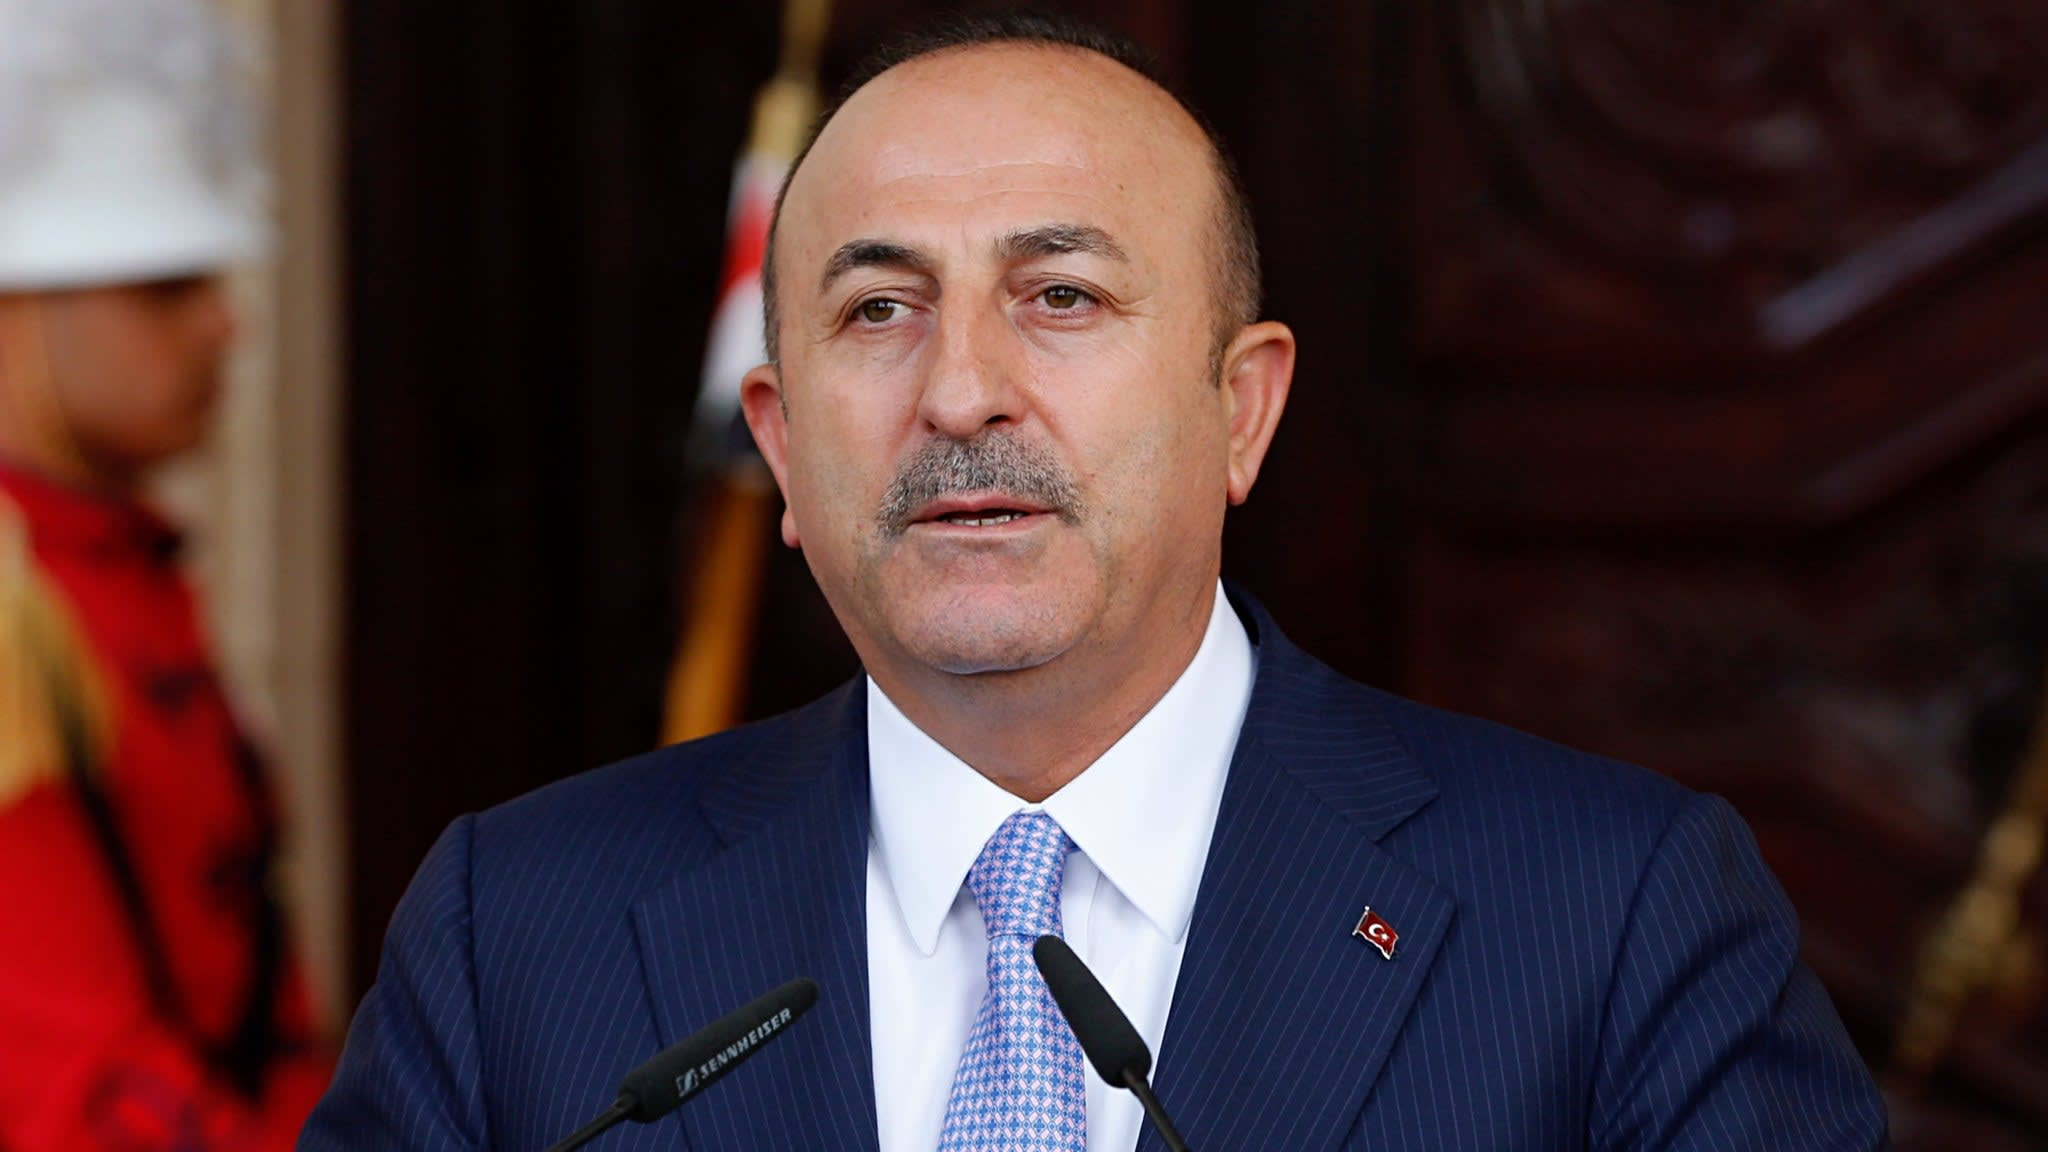 Turkey's foreign minister wary on US ties after pastor's release